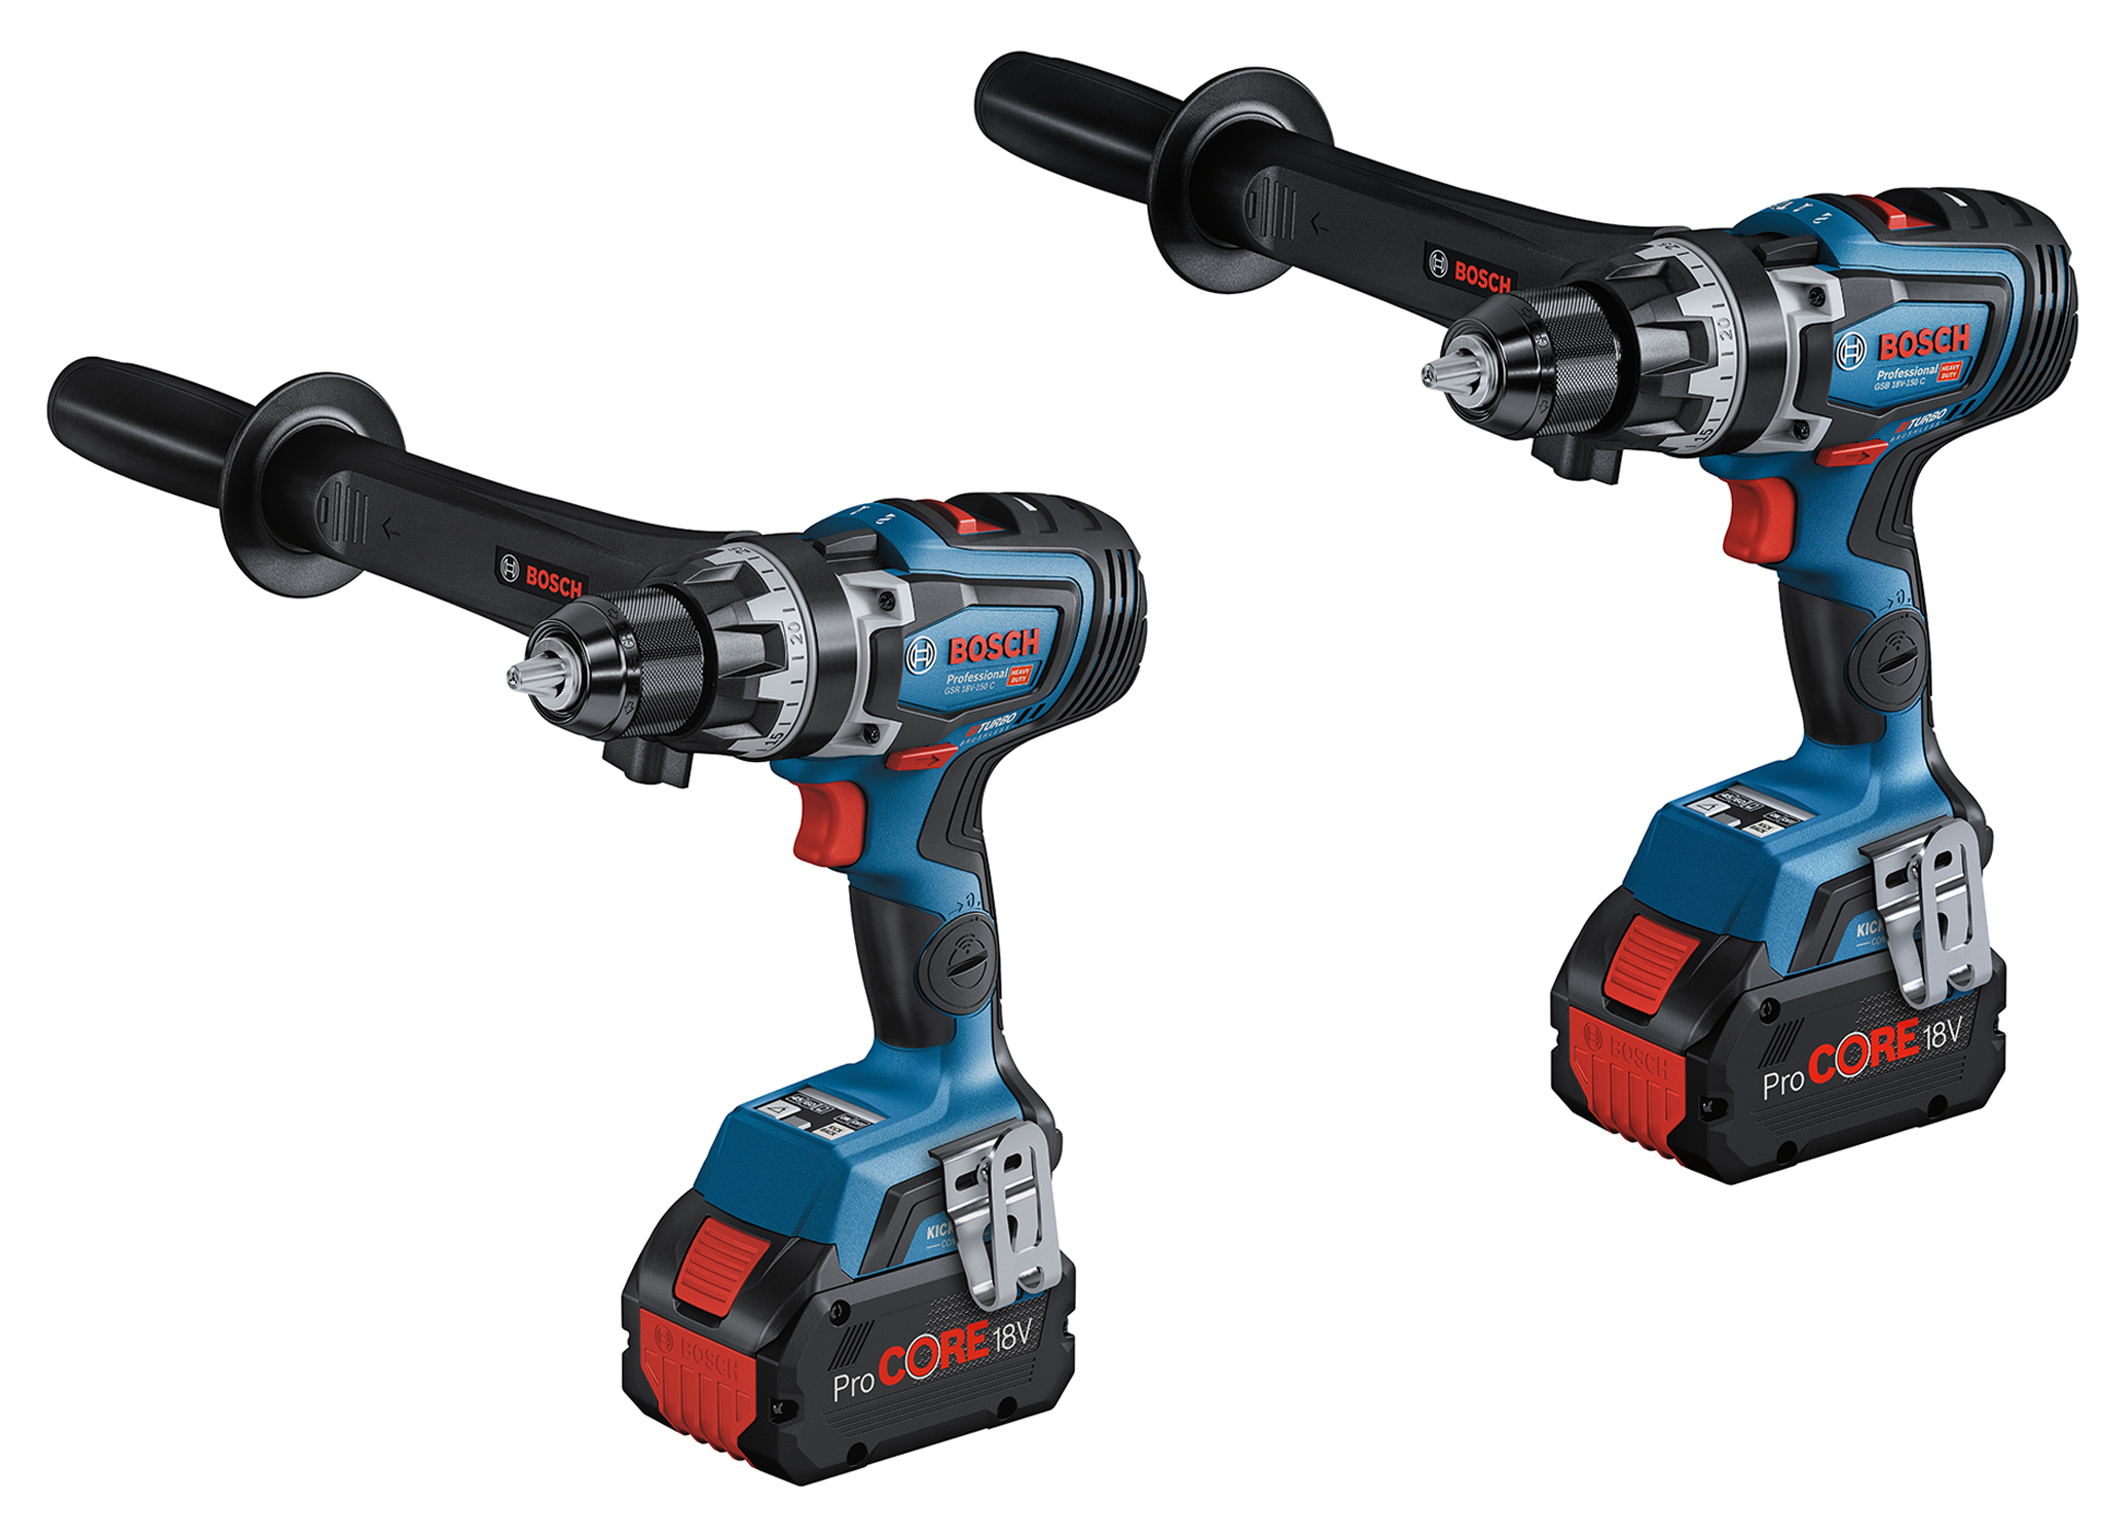 Cordless tools in a new performance dimension: First Biturbo drill drivers from Bosch for pros